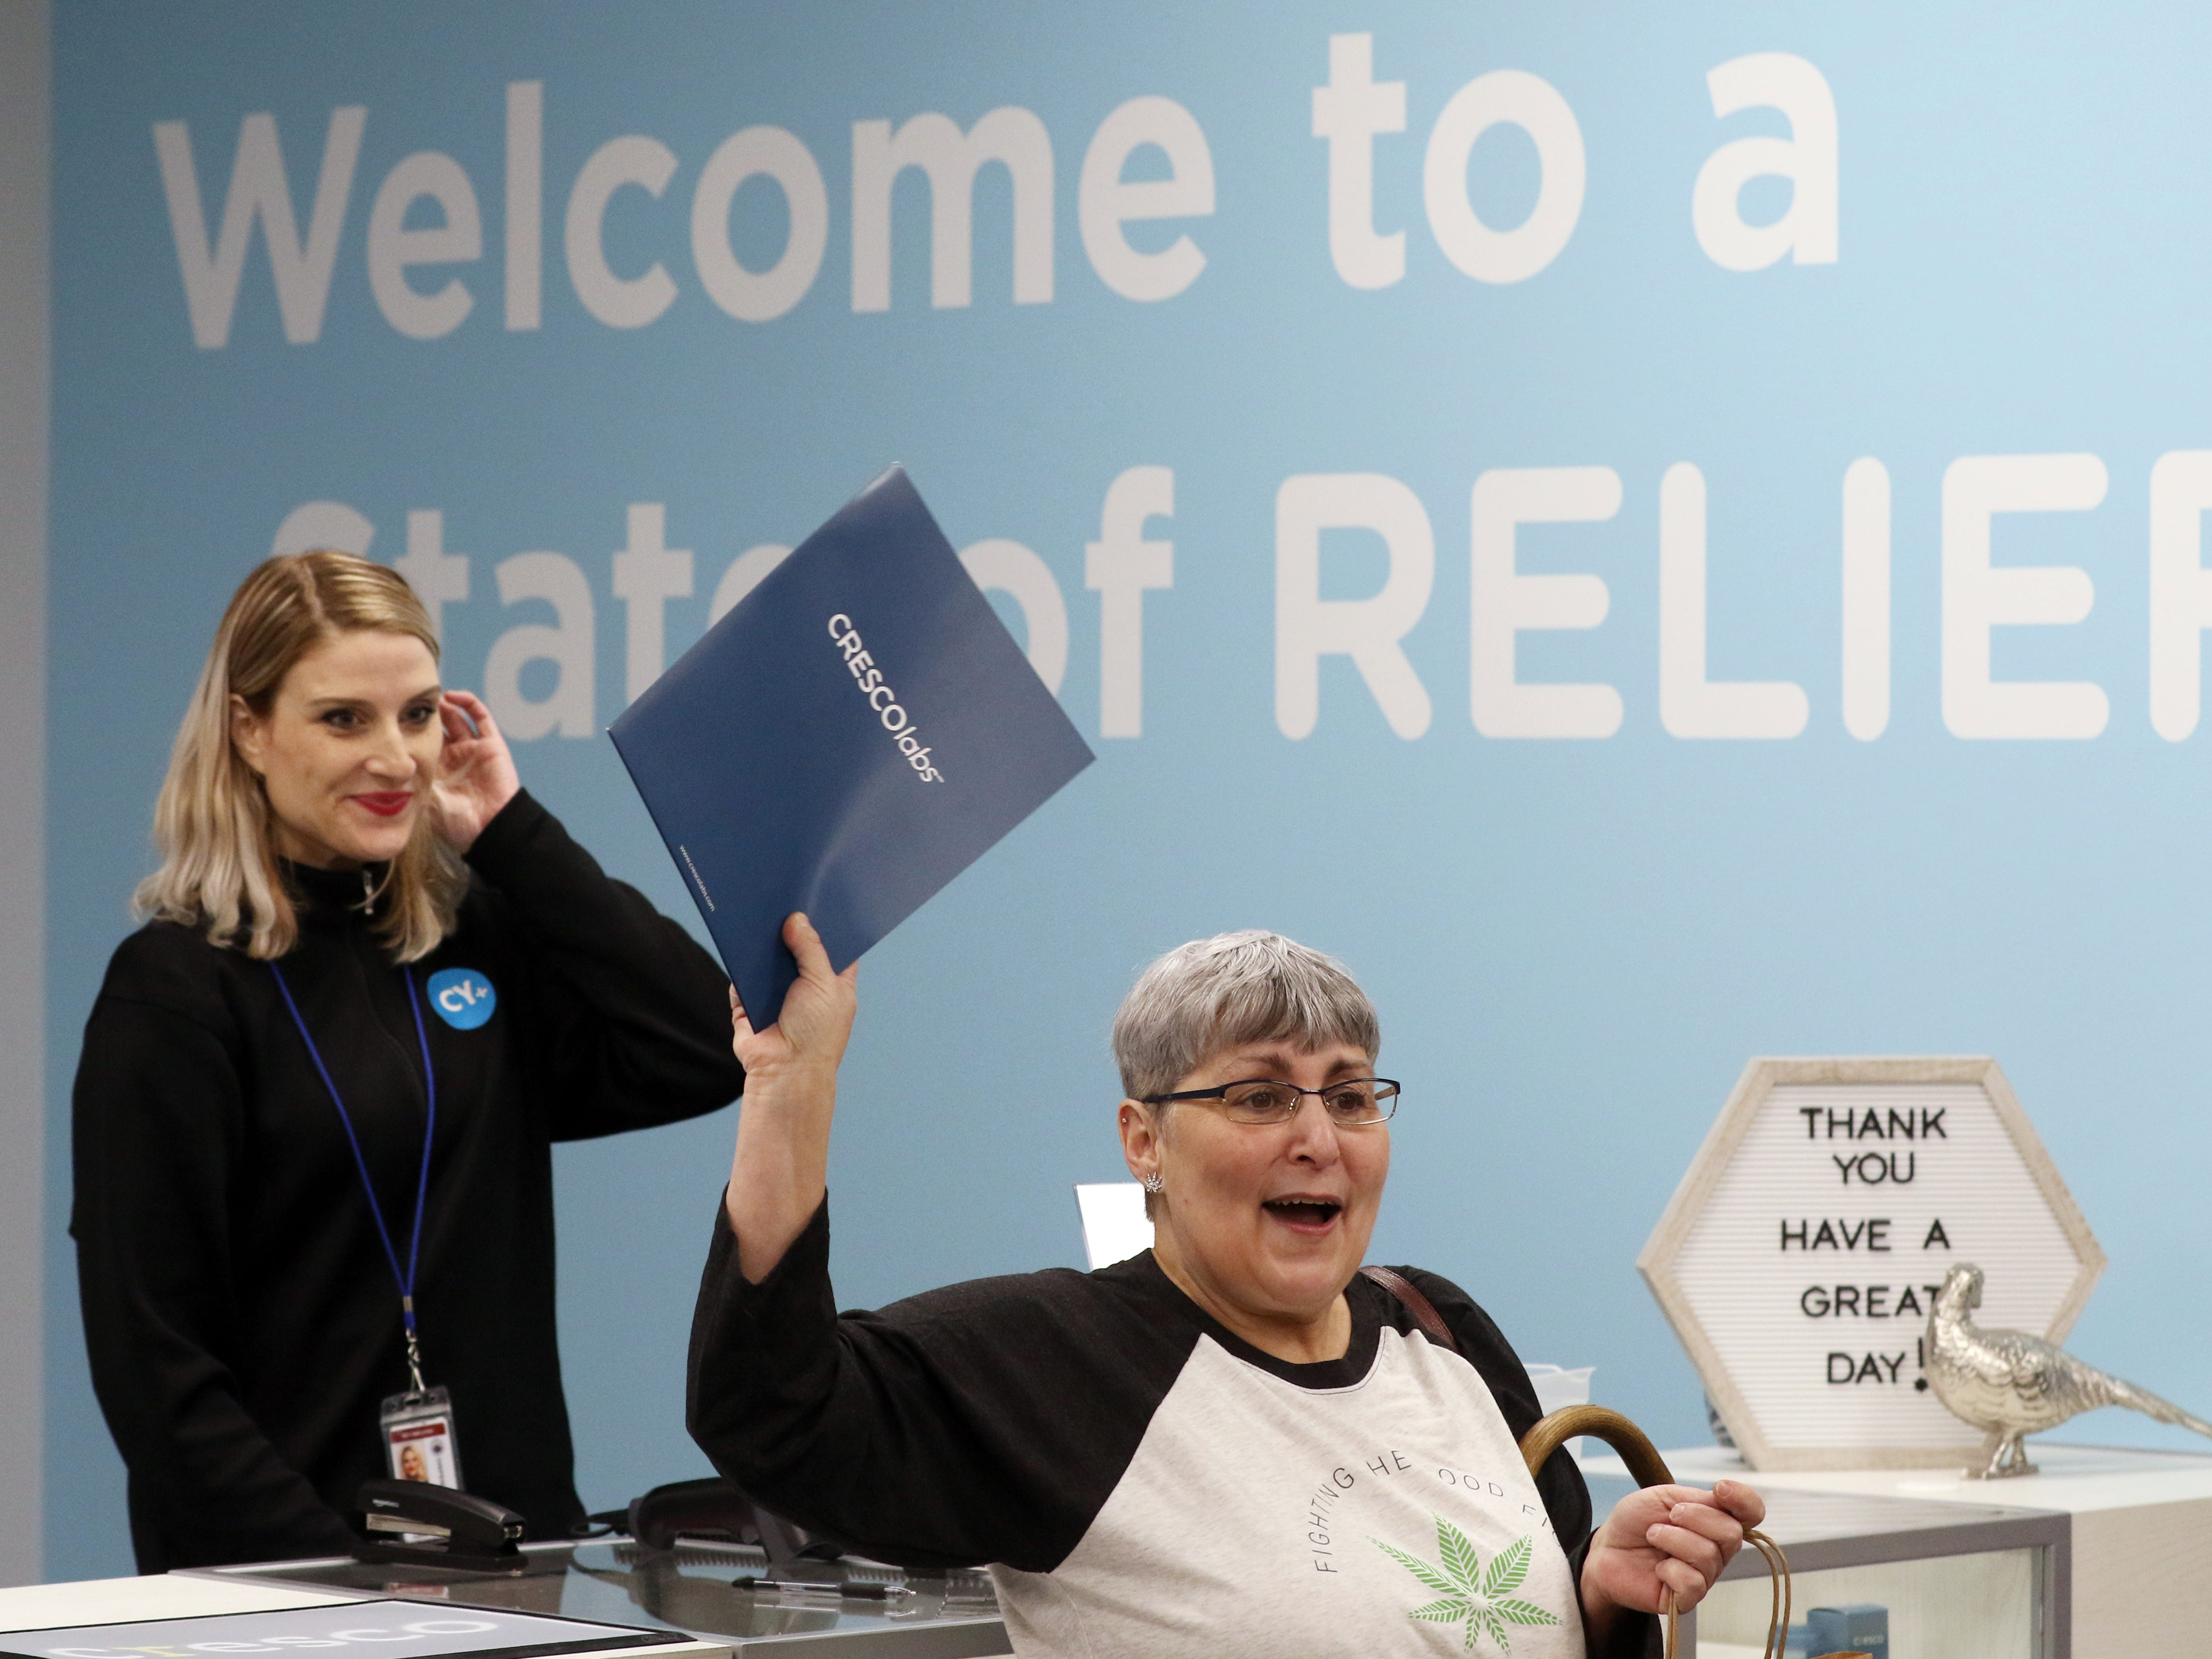 Joan Caleodis of Martins Ferry celebrates after becoming the first person to purchase medical marijuana at CY+ Dispensary in Wintersville Wednesday morning.